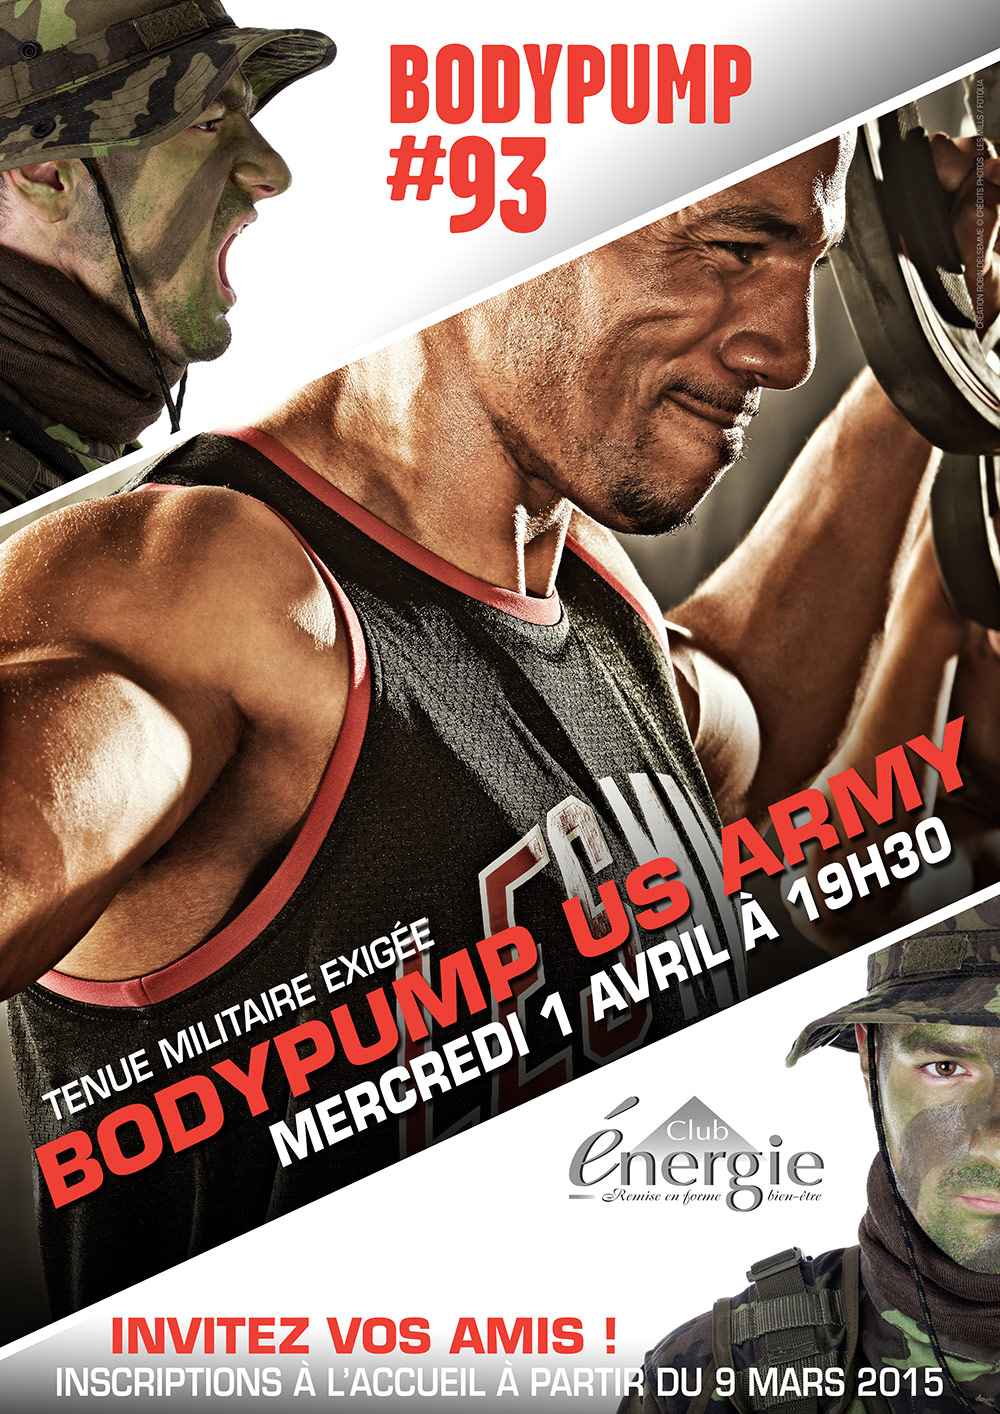 lancements lesmills bodypump us army club energie fitness orleans body pump